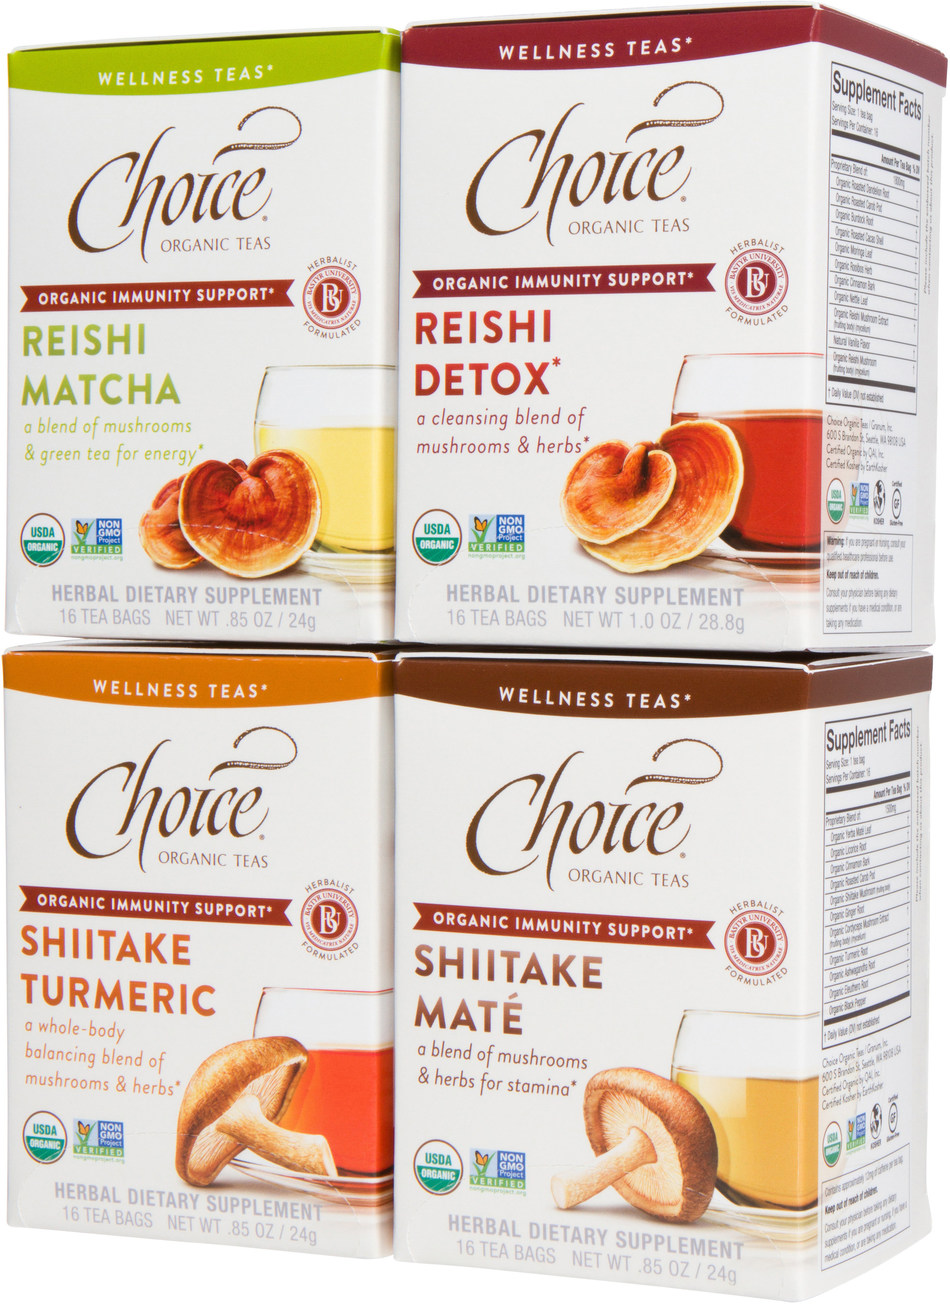 Choice Organic Teas introduces new Mushroom Wellness Teas for immunity support.*